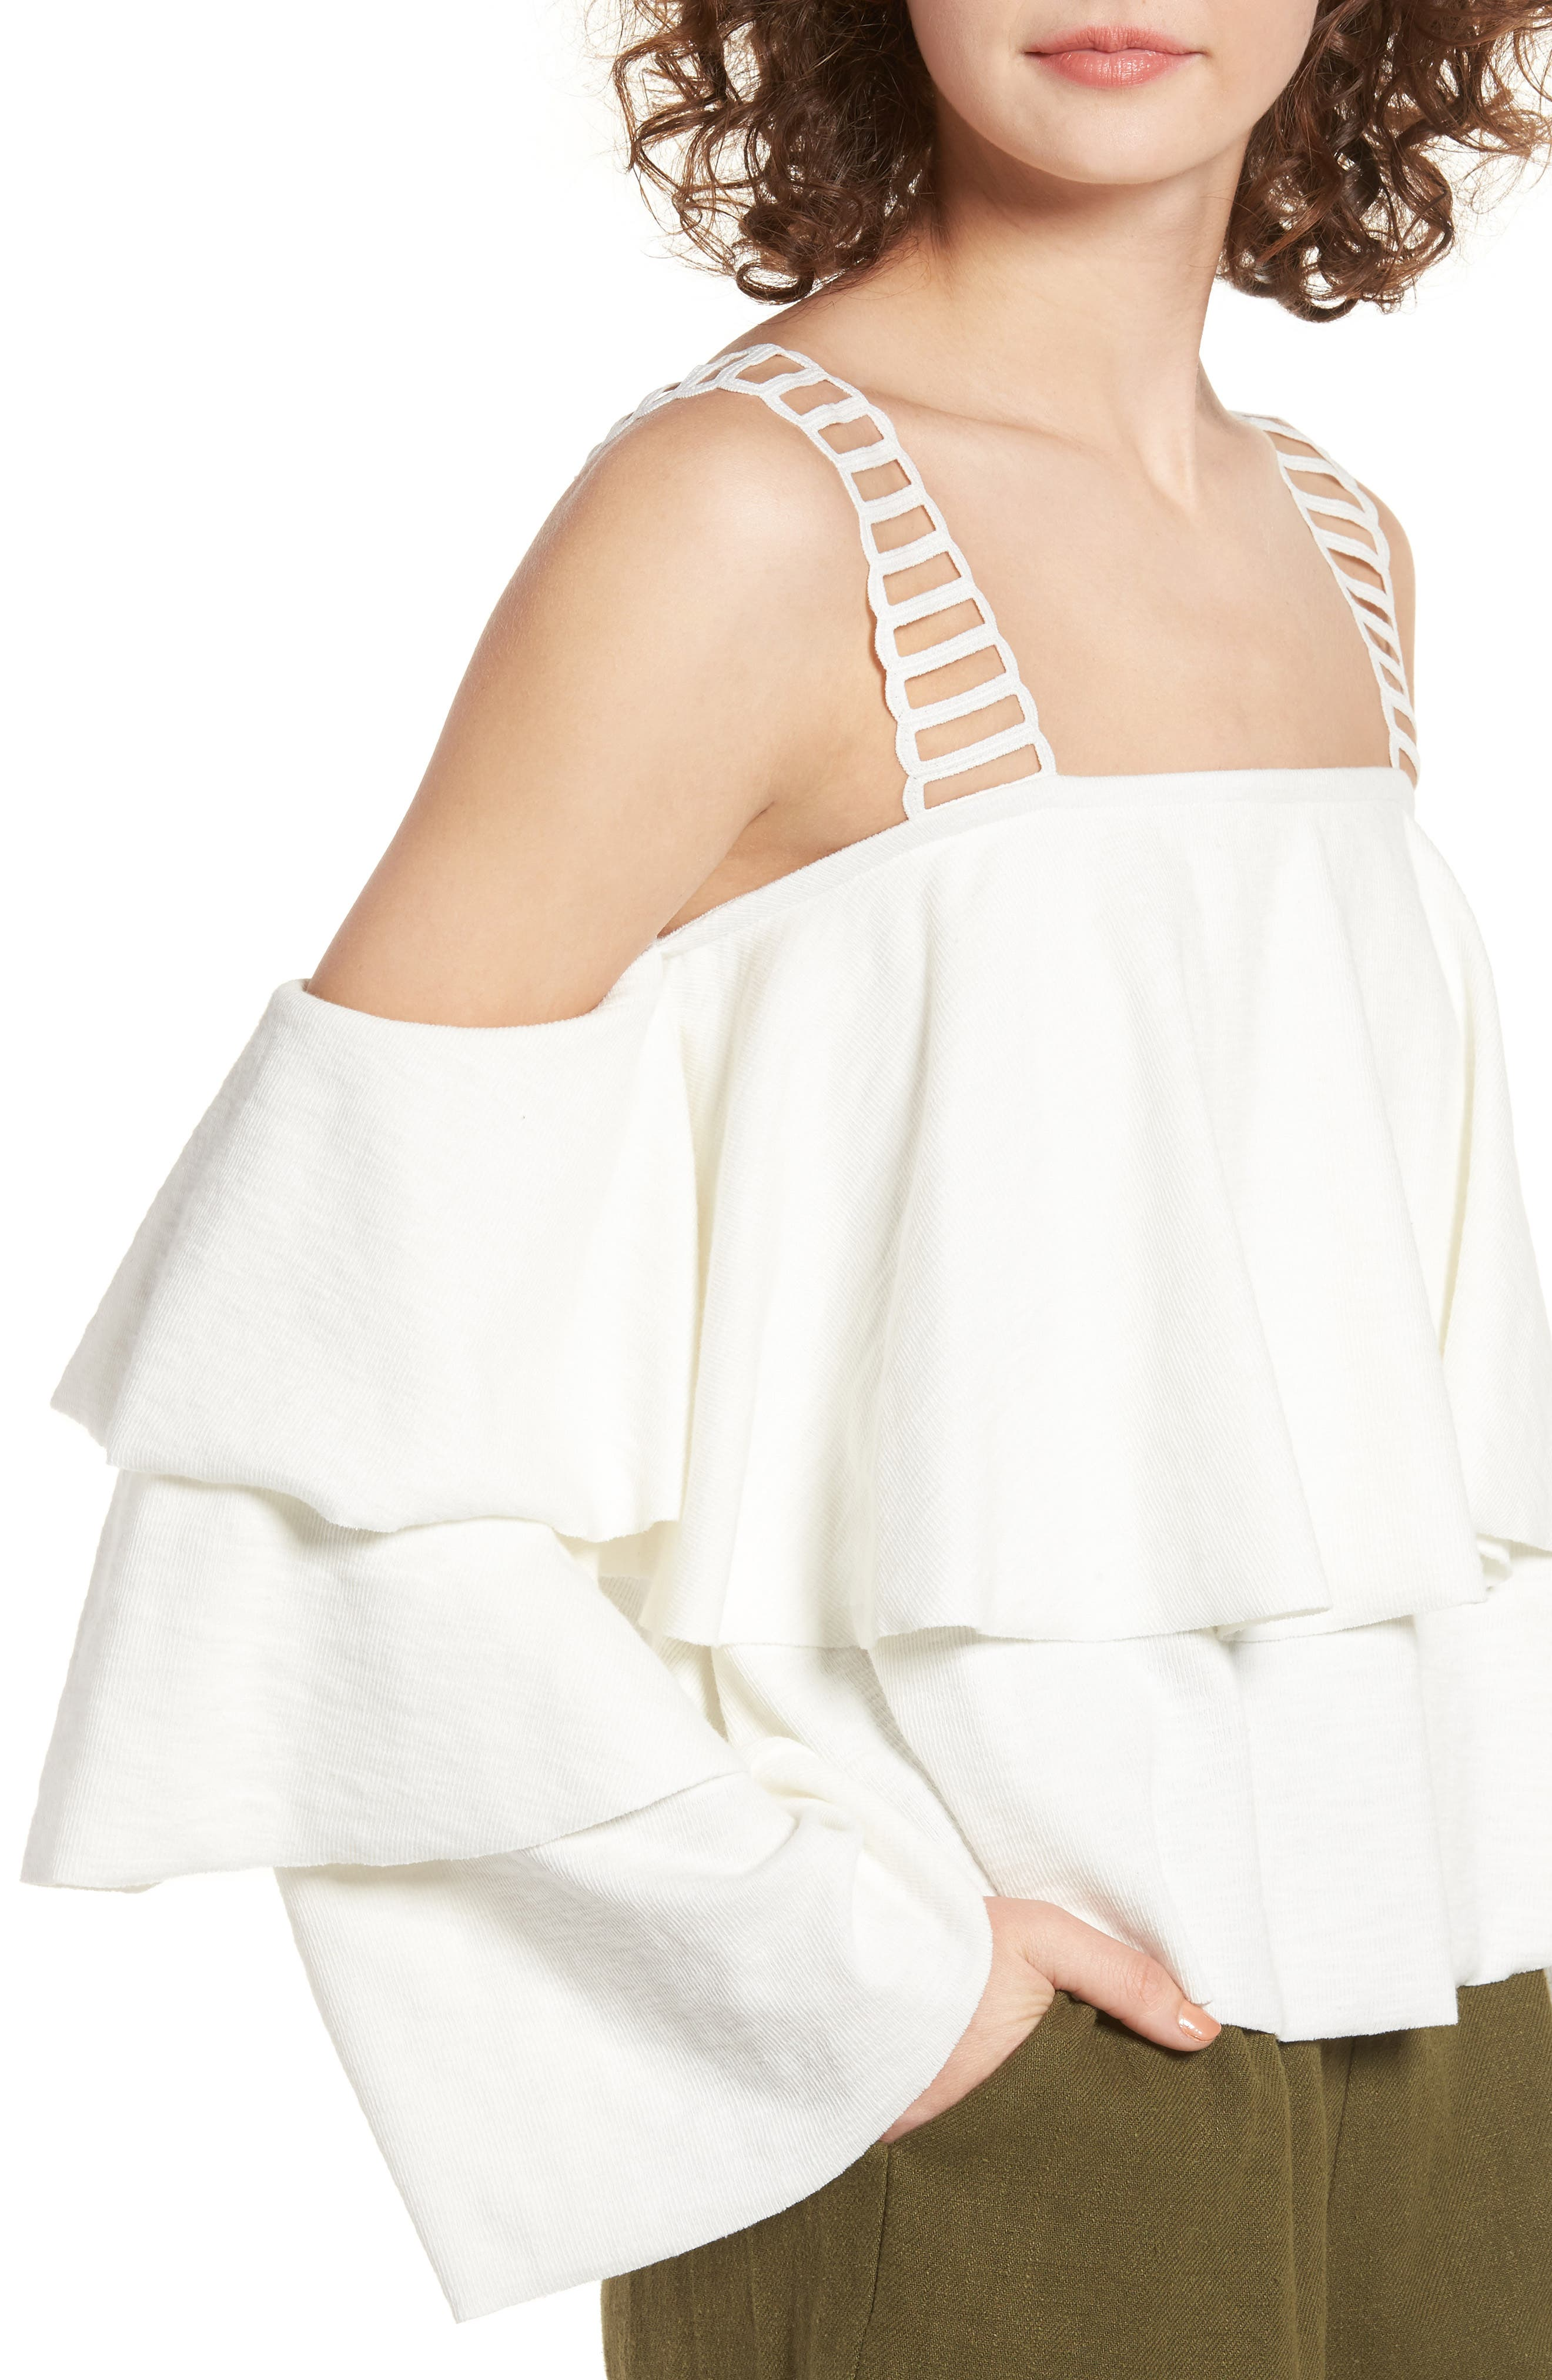 Lace & Ruffle Off the Shoulder Top,                             Alternate thumbnail 4, color,                             100